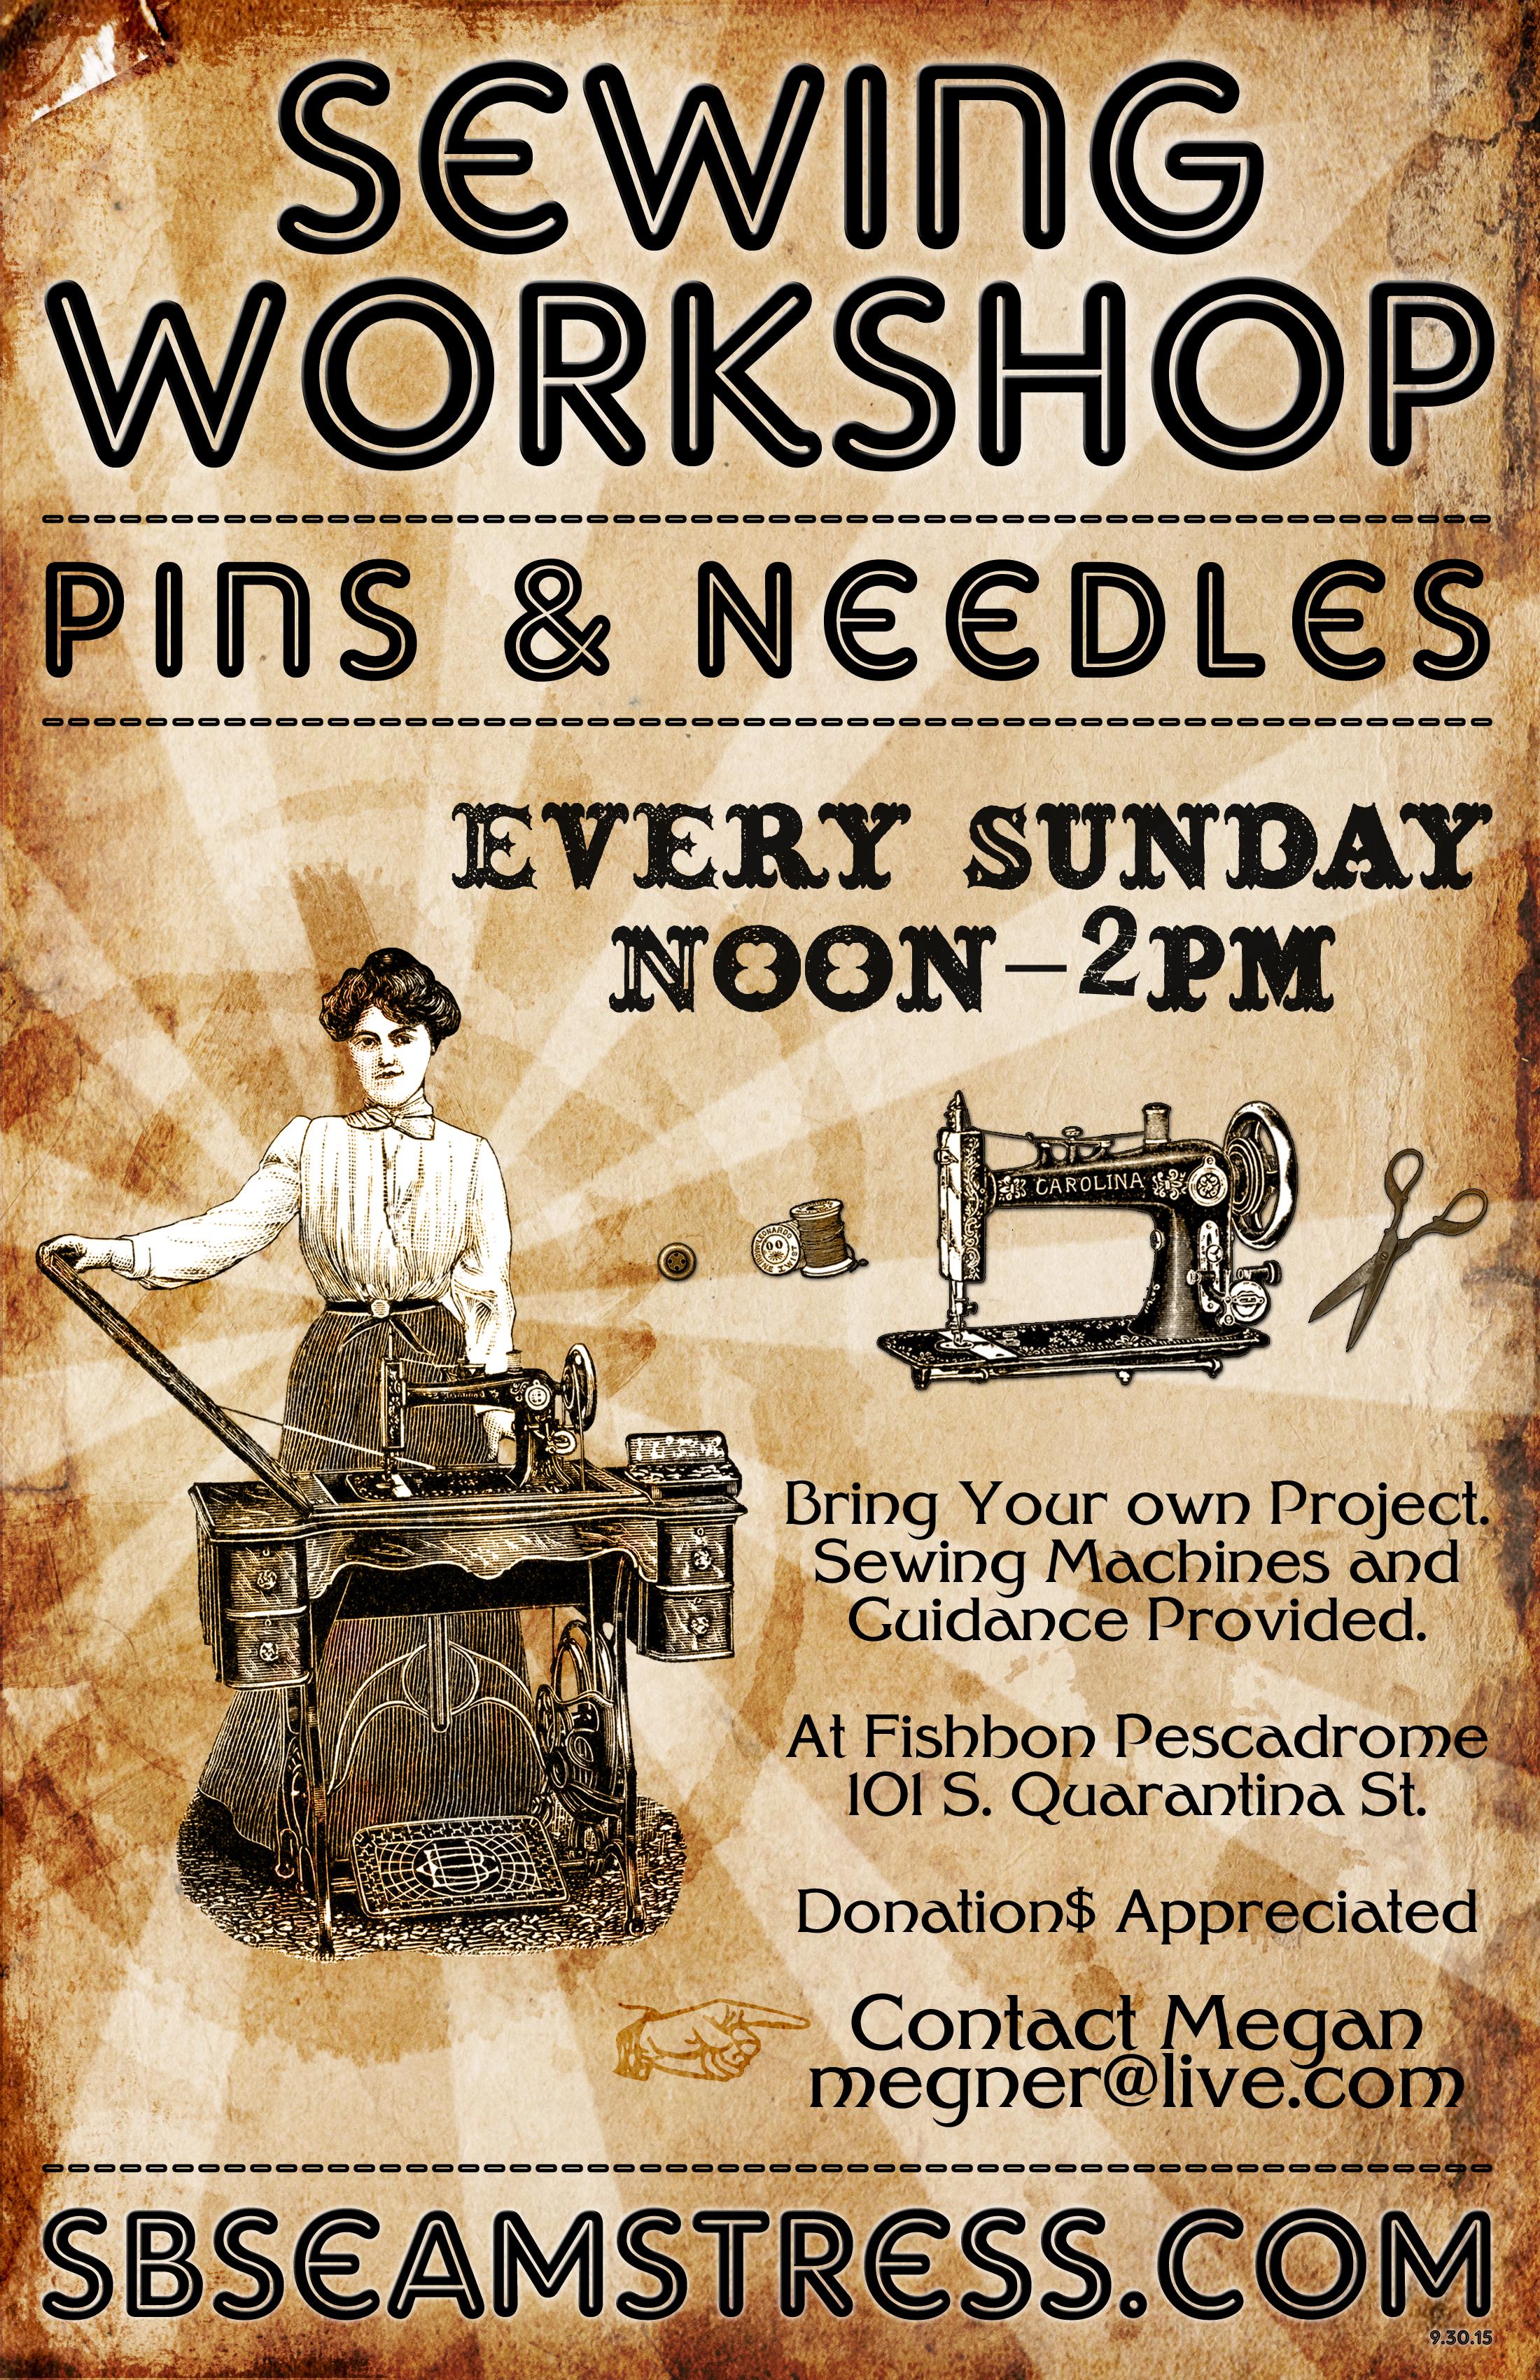 October Flyer - Sewing Class - Pins & Needles